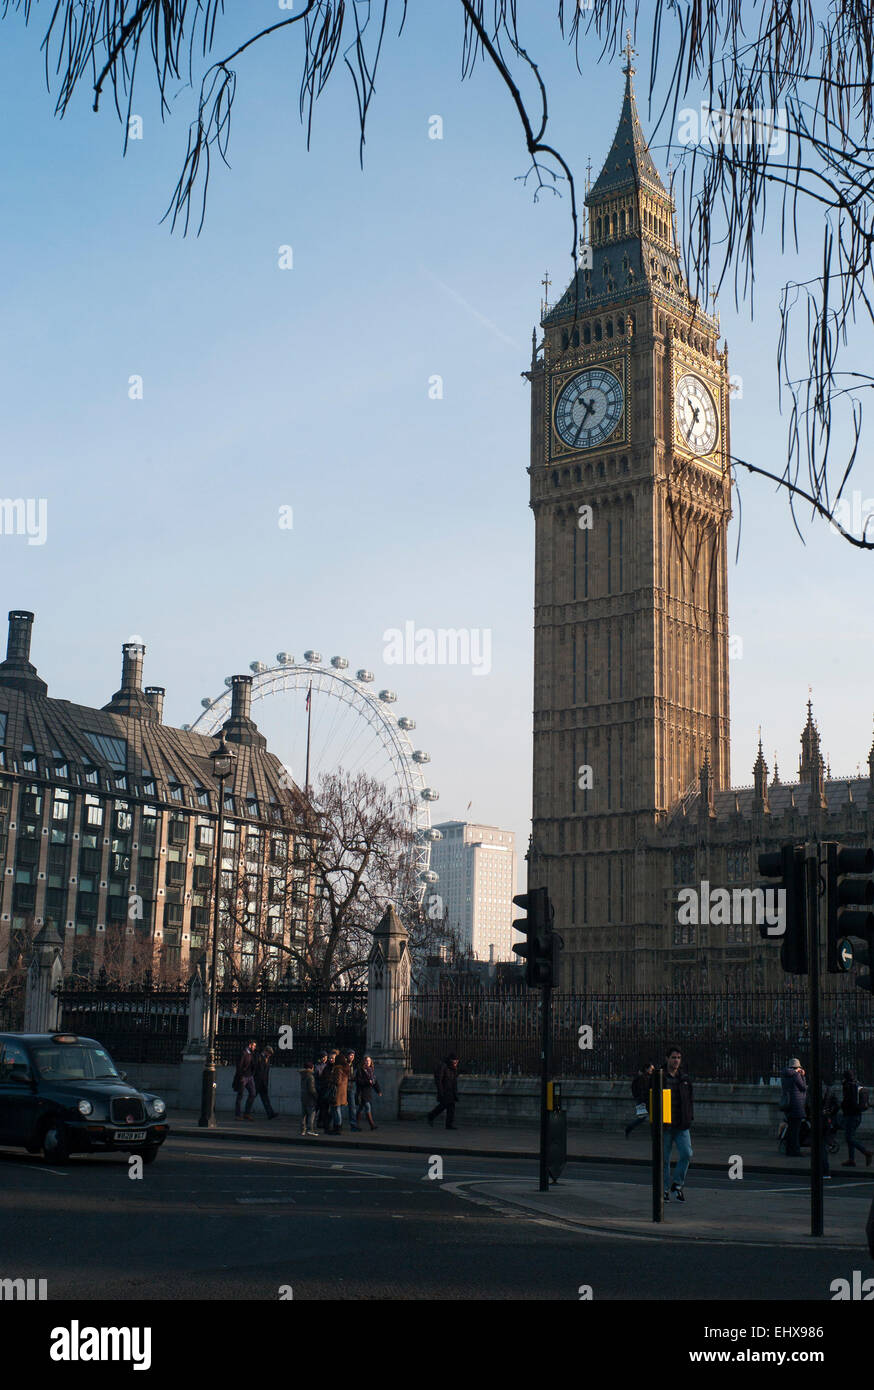 Palace of Westminster, the clock tower, housing the Bell big Ben, London eye, portcullis house, black taxi Parliament - Stock Image